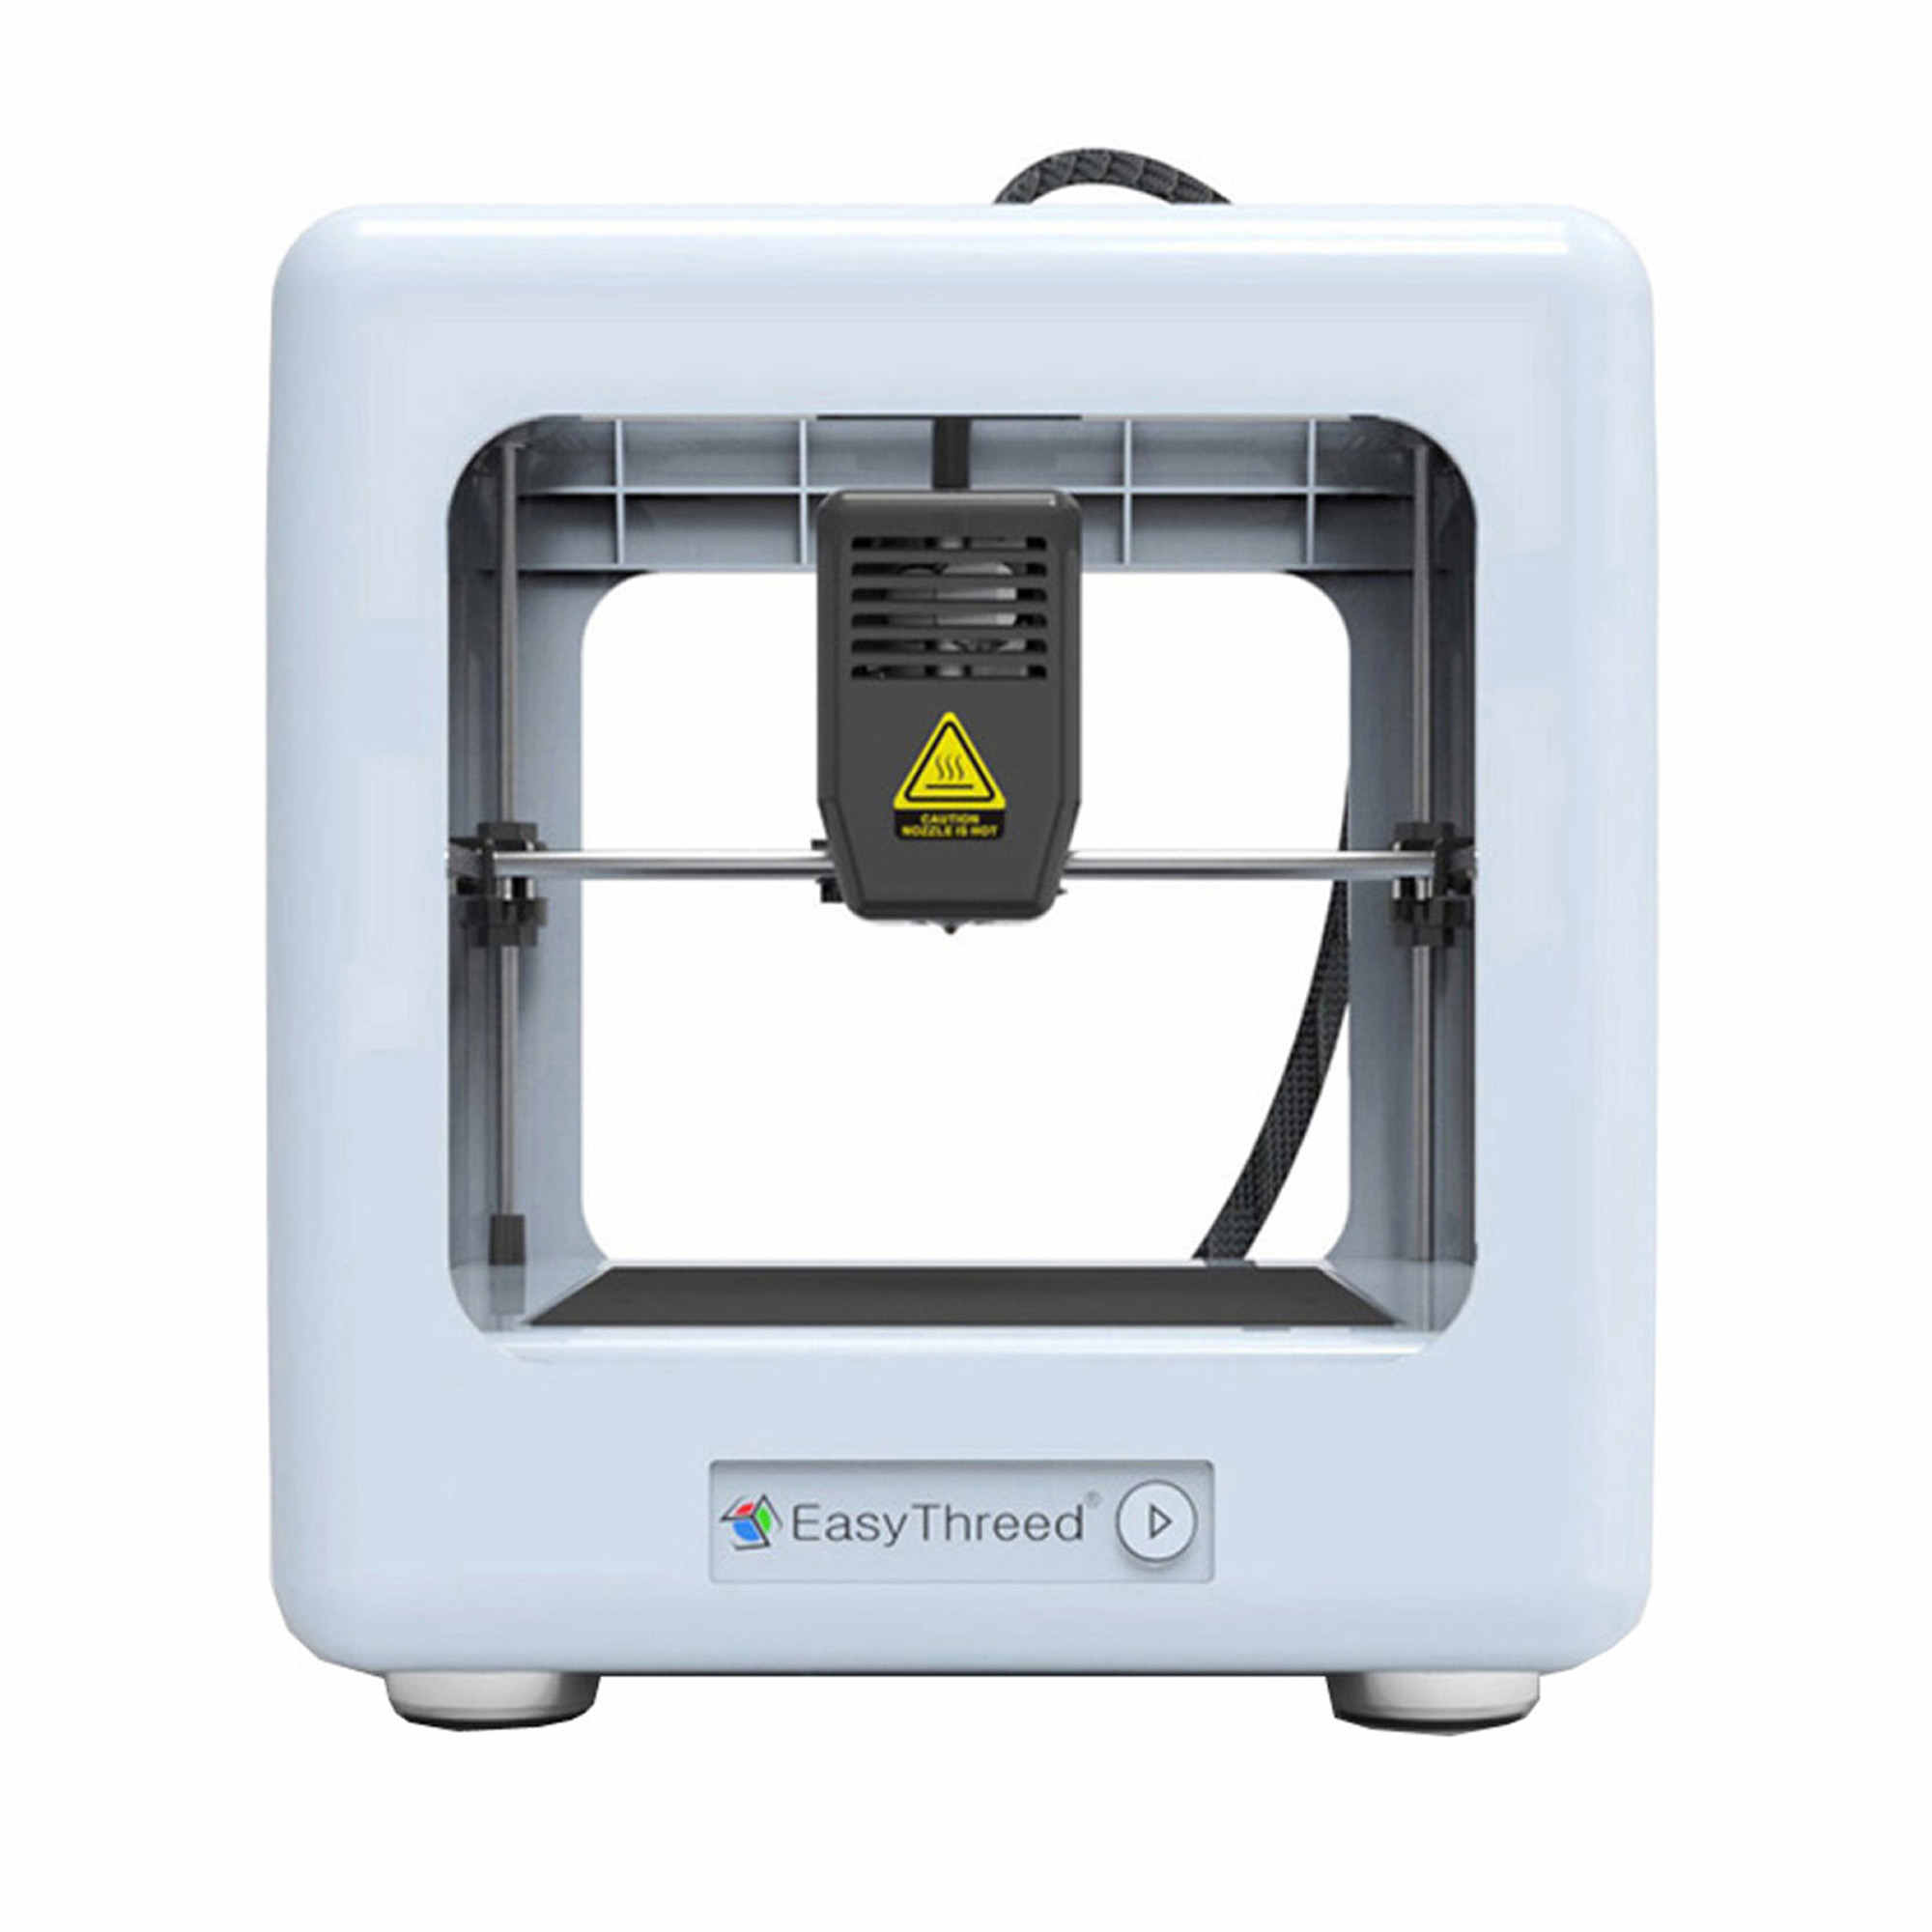 EASYTHREED Nano 3D Printer with TF Card and Detachable Magnetic Platform for Educational Use